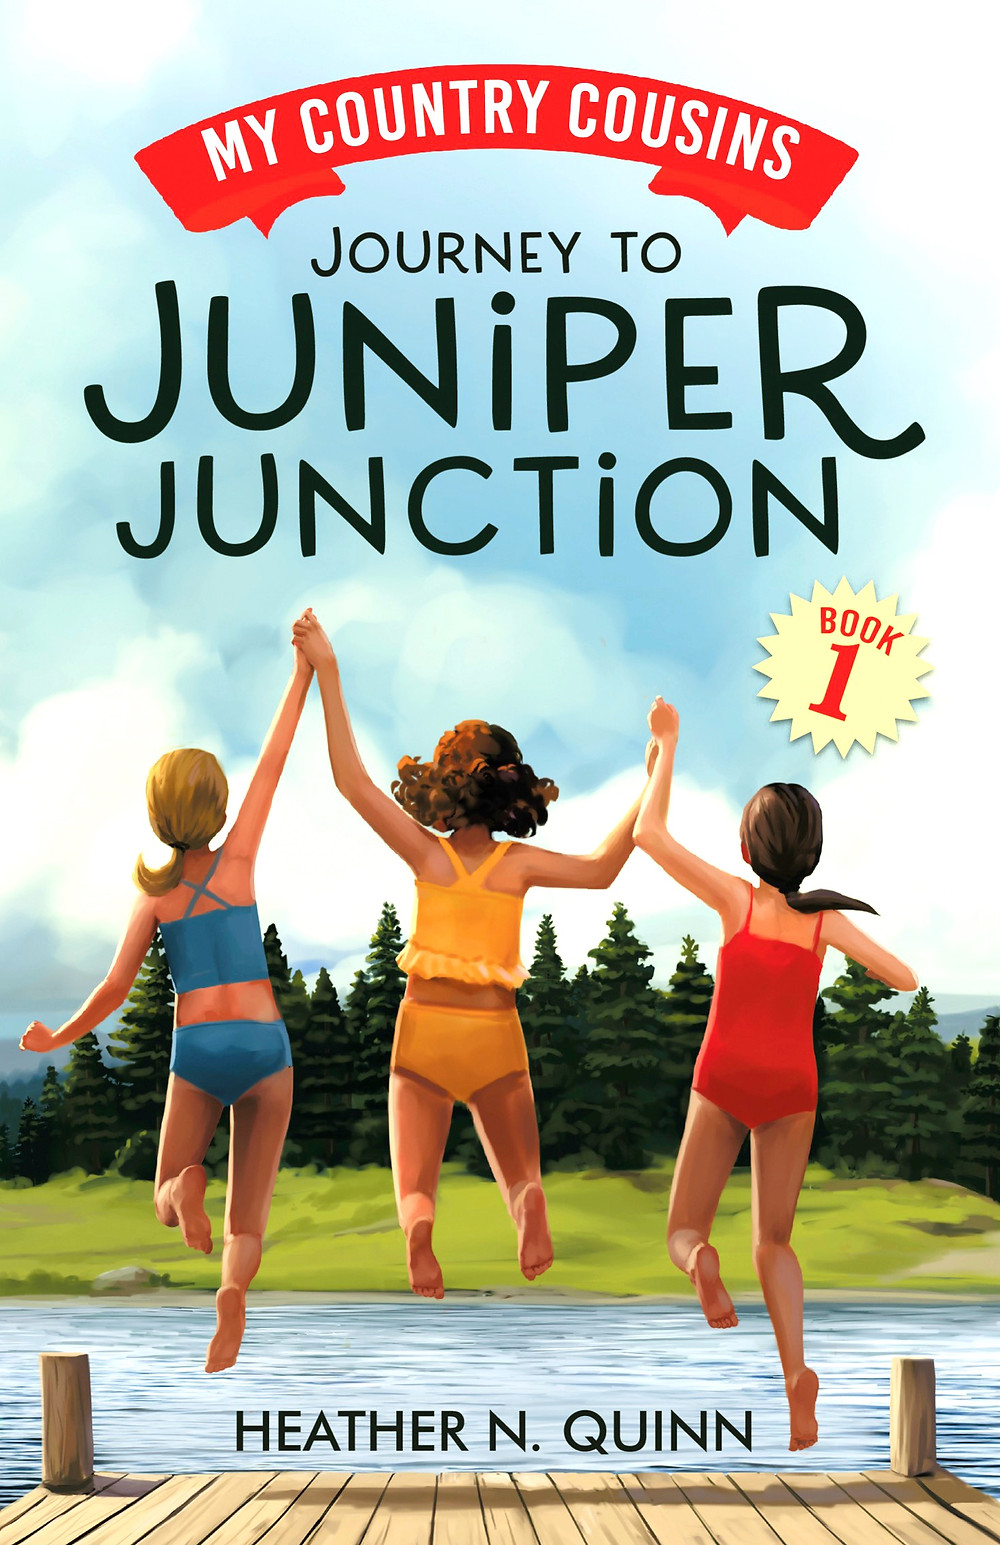 My Country Cousins Journey to Juniper Junction